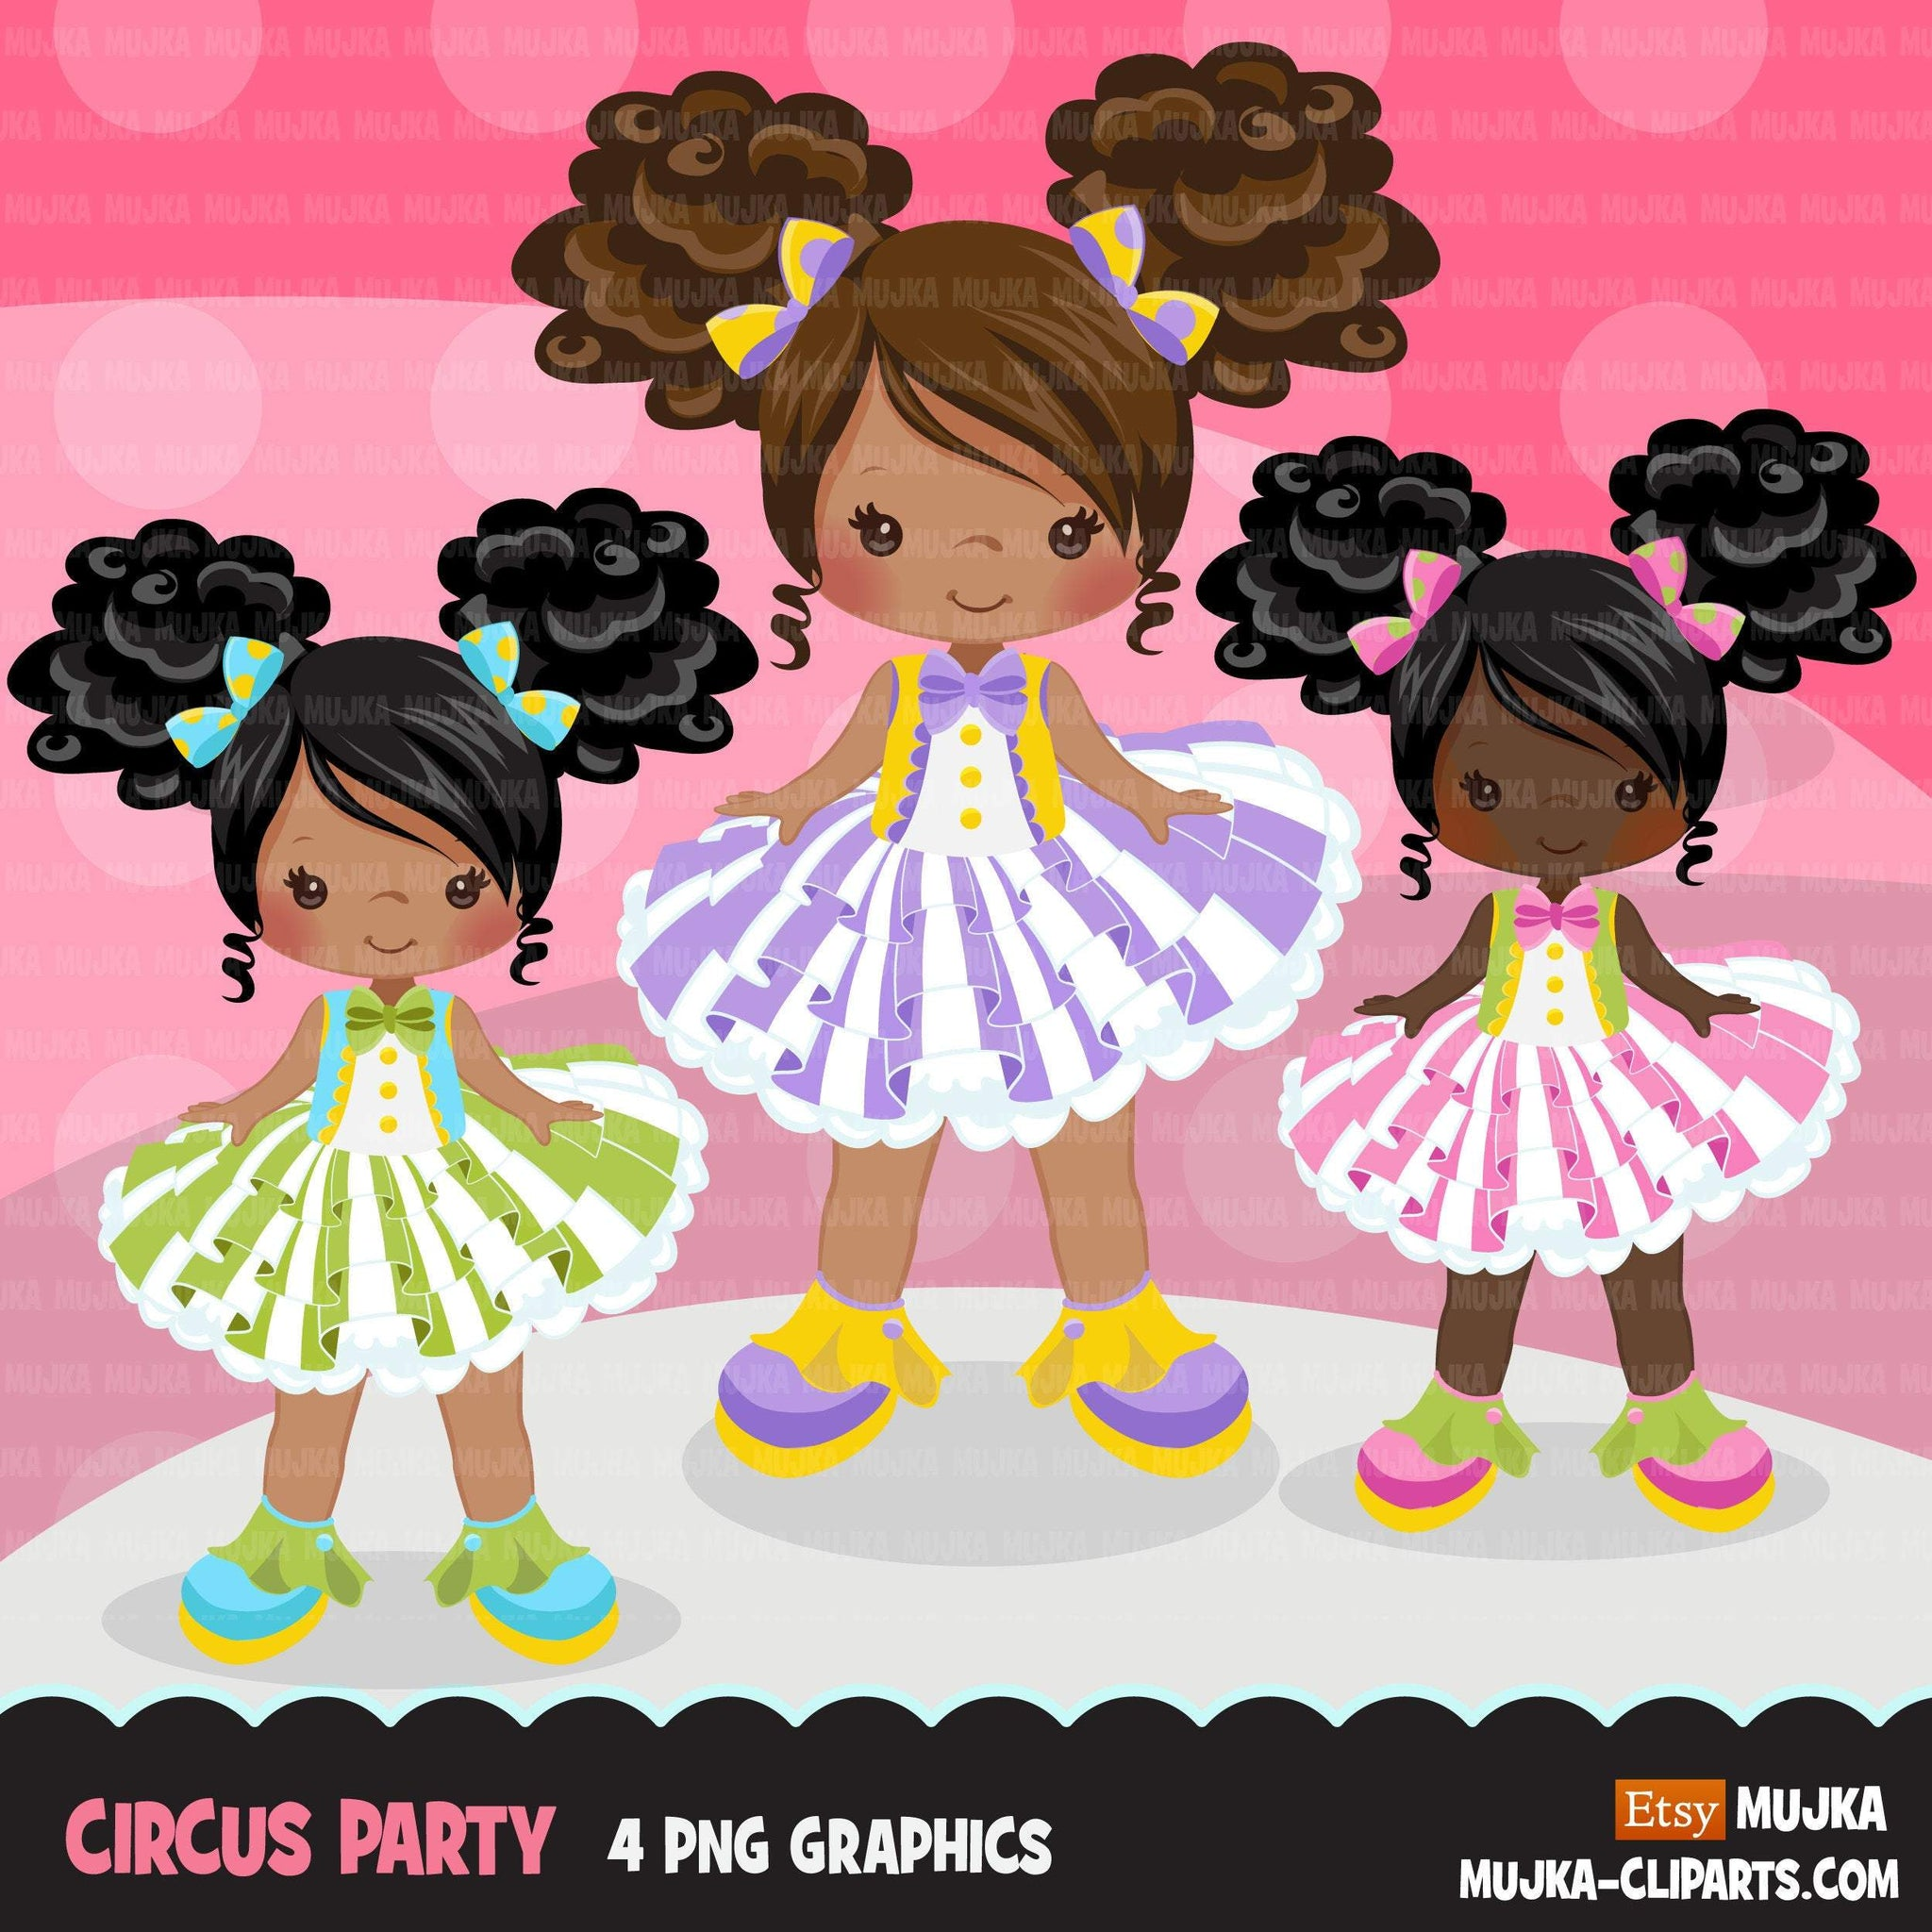 Afro puff Circus Girls Clipart pastel Big top carnival graphics, black tutu girls summer